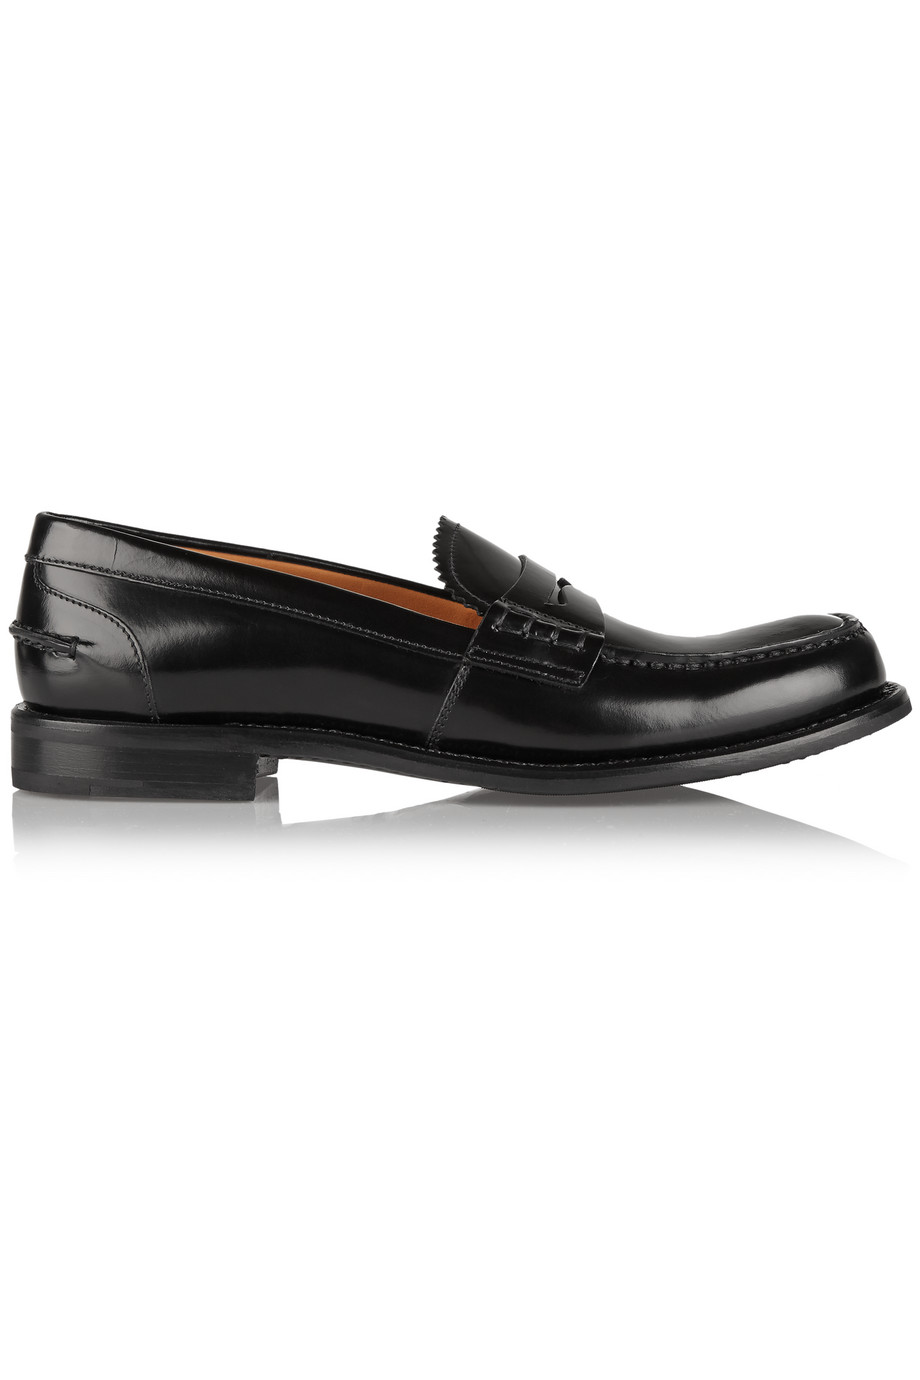 Church's Sally Glossed-Leather Loafers, Black, Women's US Size: 7.5, Size: 38